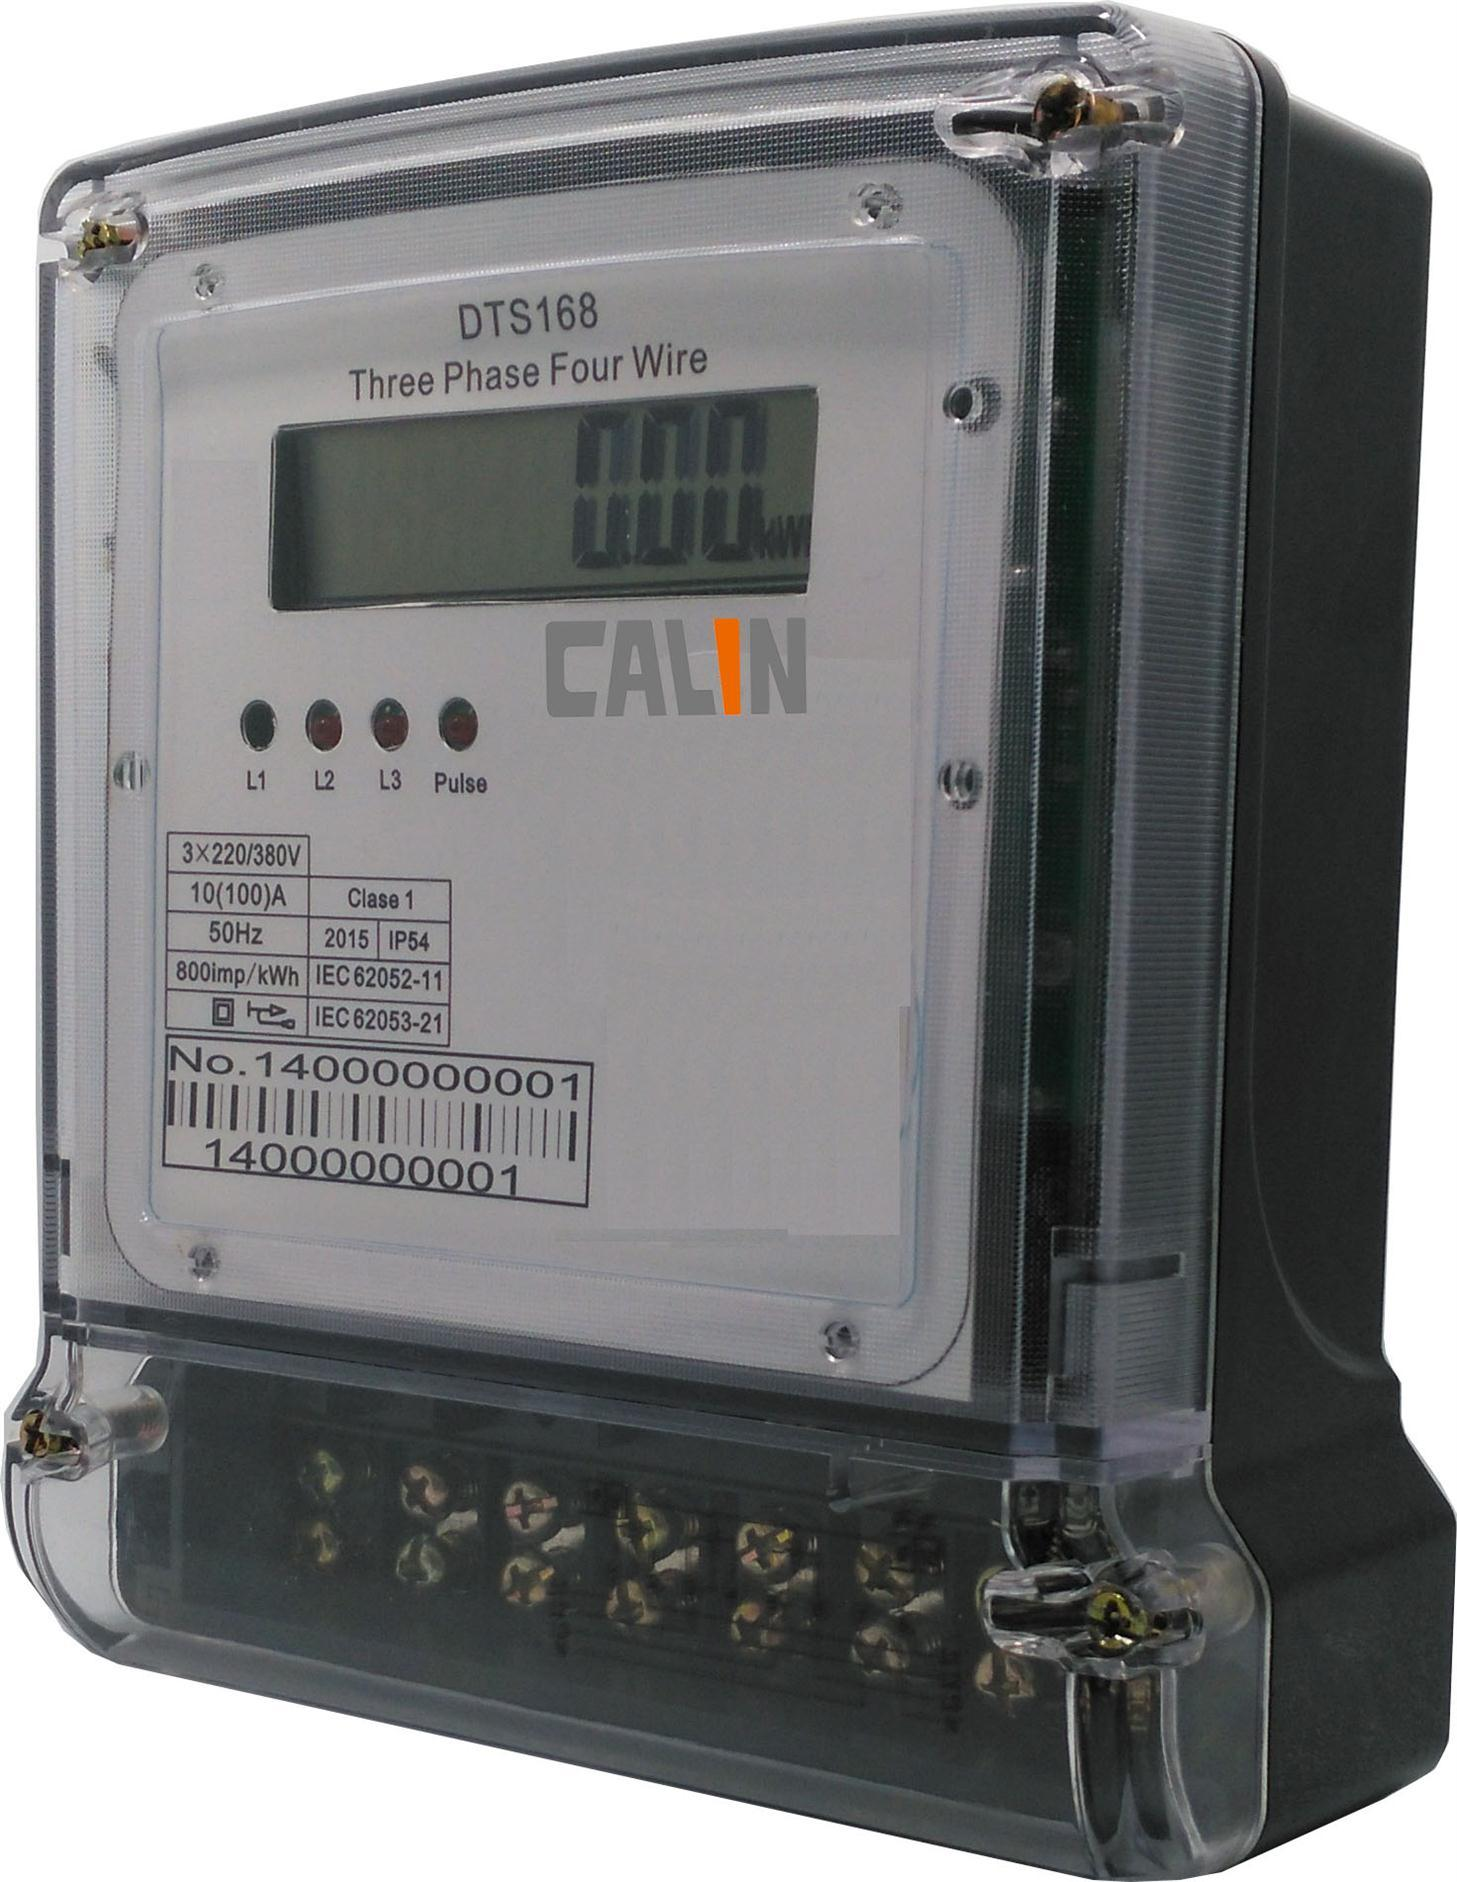 Three Phase Four Wires Multifunction Energy Meter